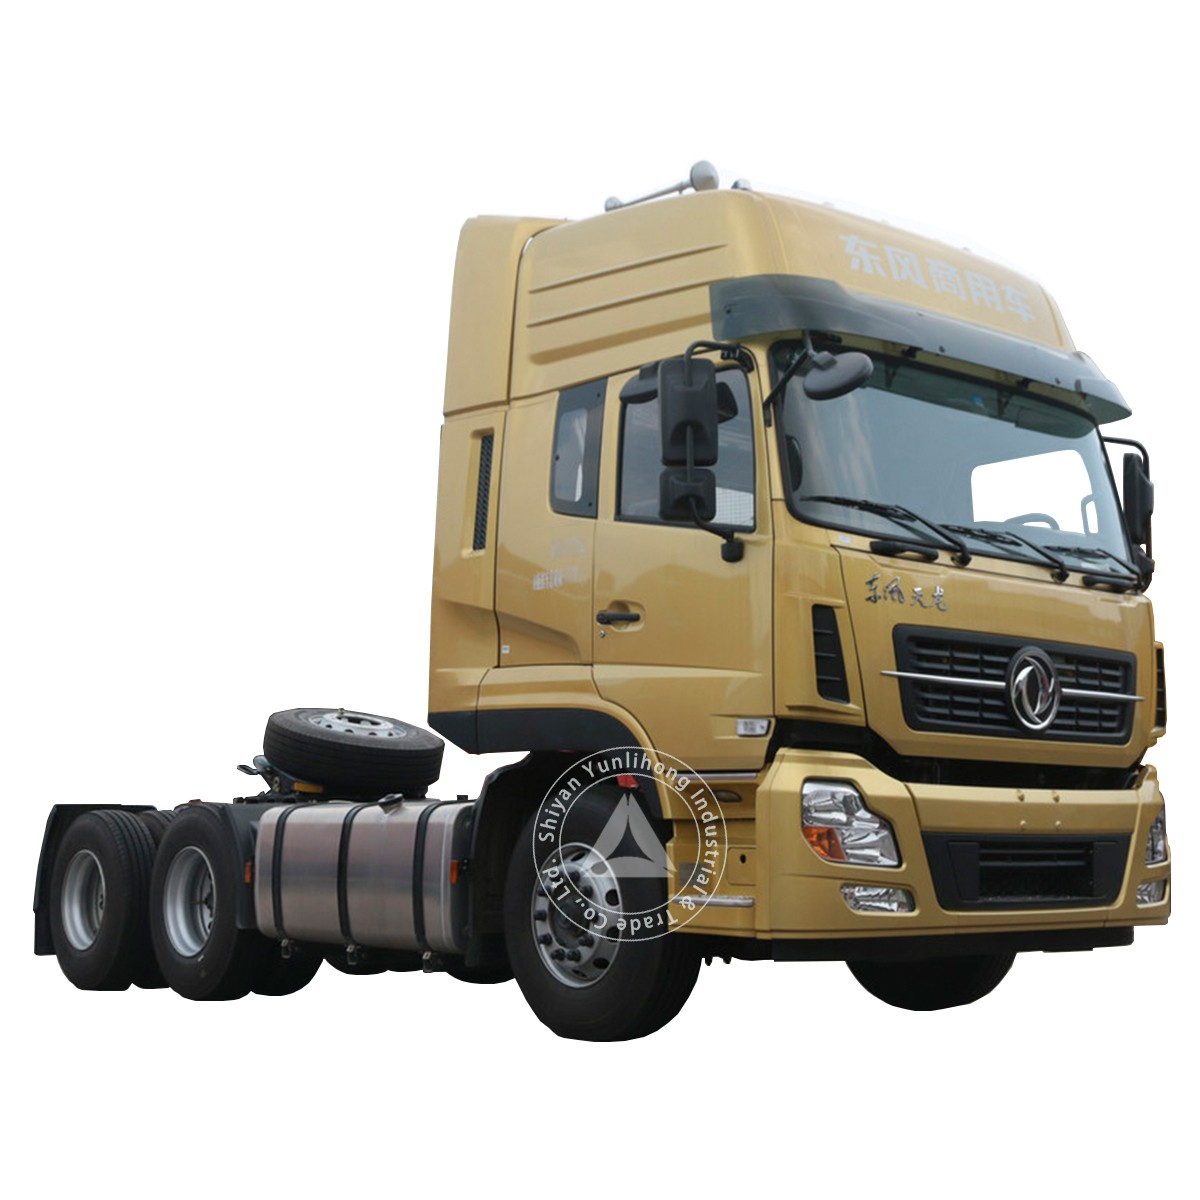 Dongfeng KL 420hp 6x4 Tractor Truck Manufacturers, Dongfeng KL 420hp 6x4 Tractor Truck Factory, Supply Dongfeng KL 420hp 6x4 Tractor Truck